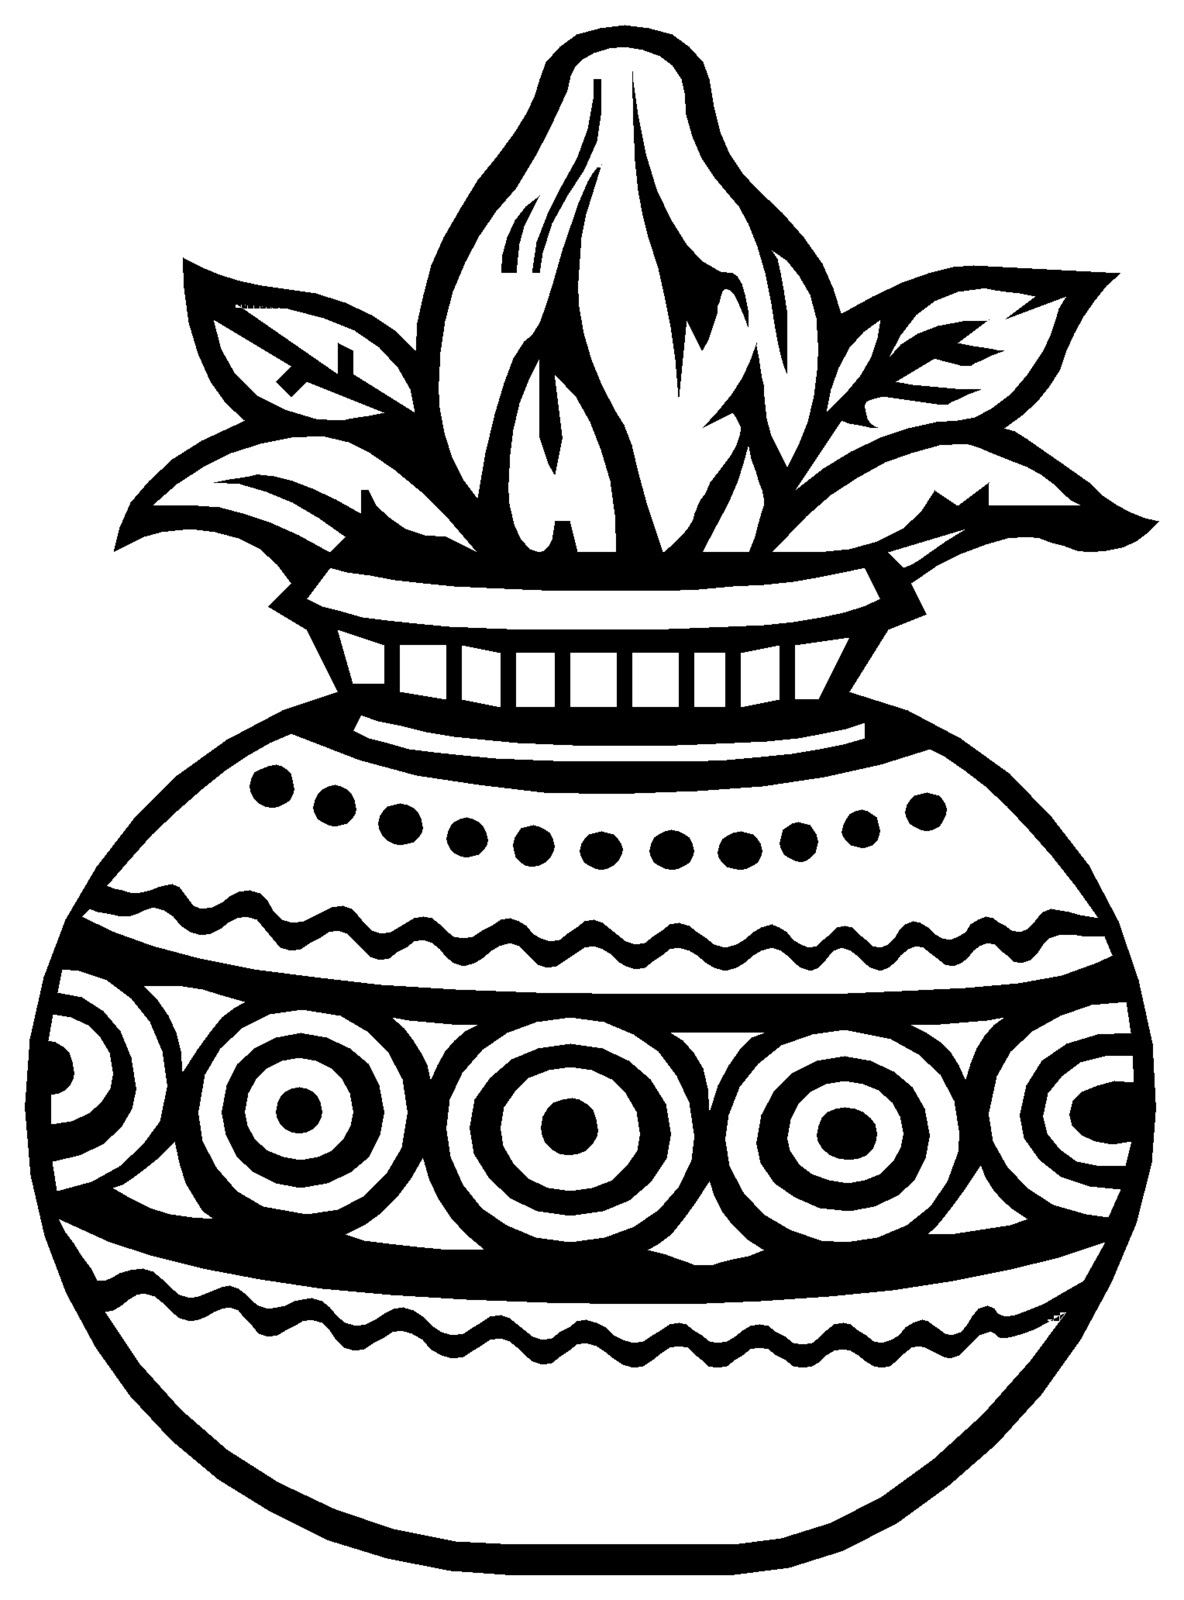 Kalash clipart black and white 8 » Clipart Station.